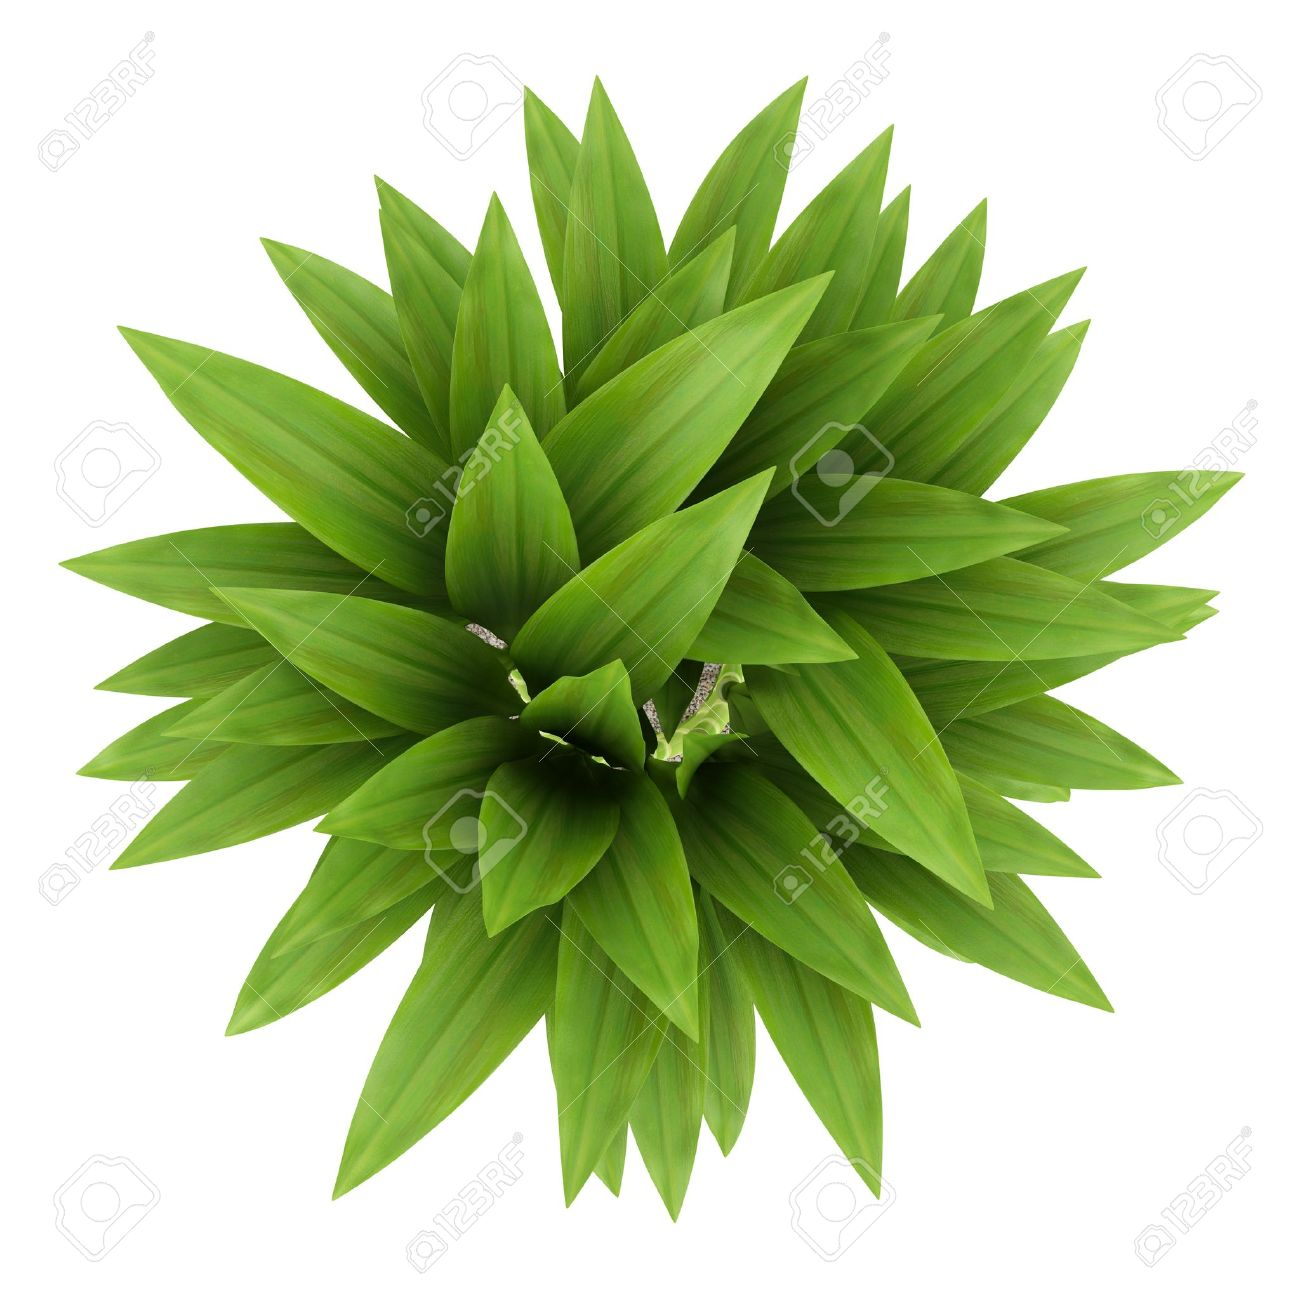 Top View Of Bamboo Plant In Pot Isolated On White Background Stock ... for Plant Top View Vector  181pct